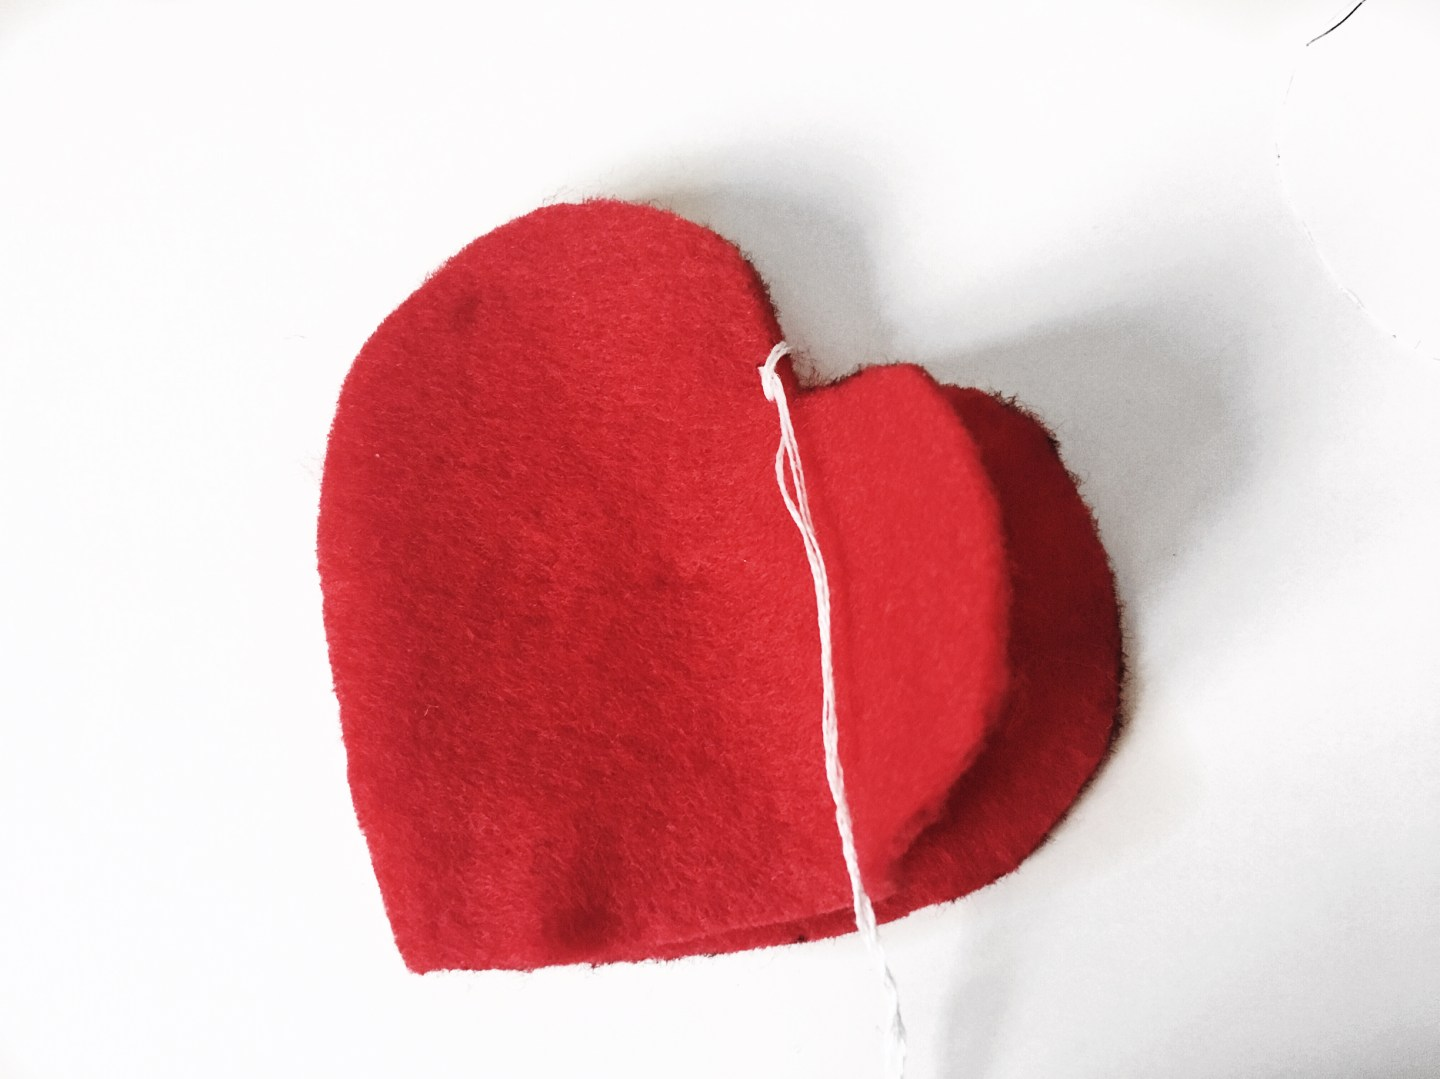 Stitched-Heart-Gift.JPG